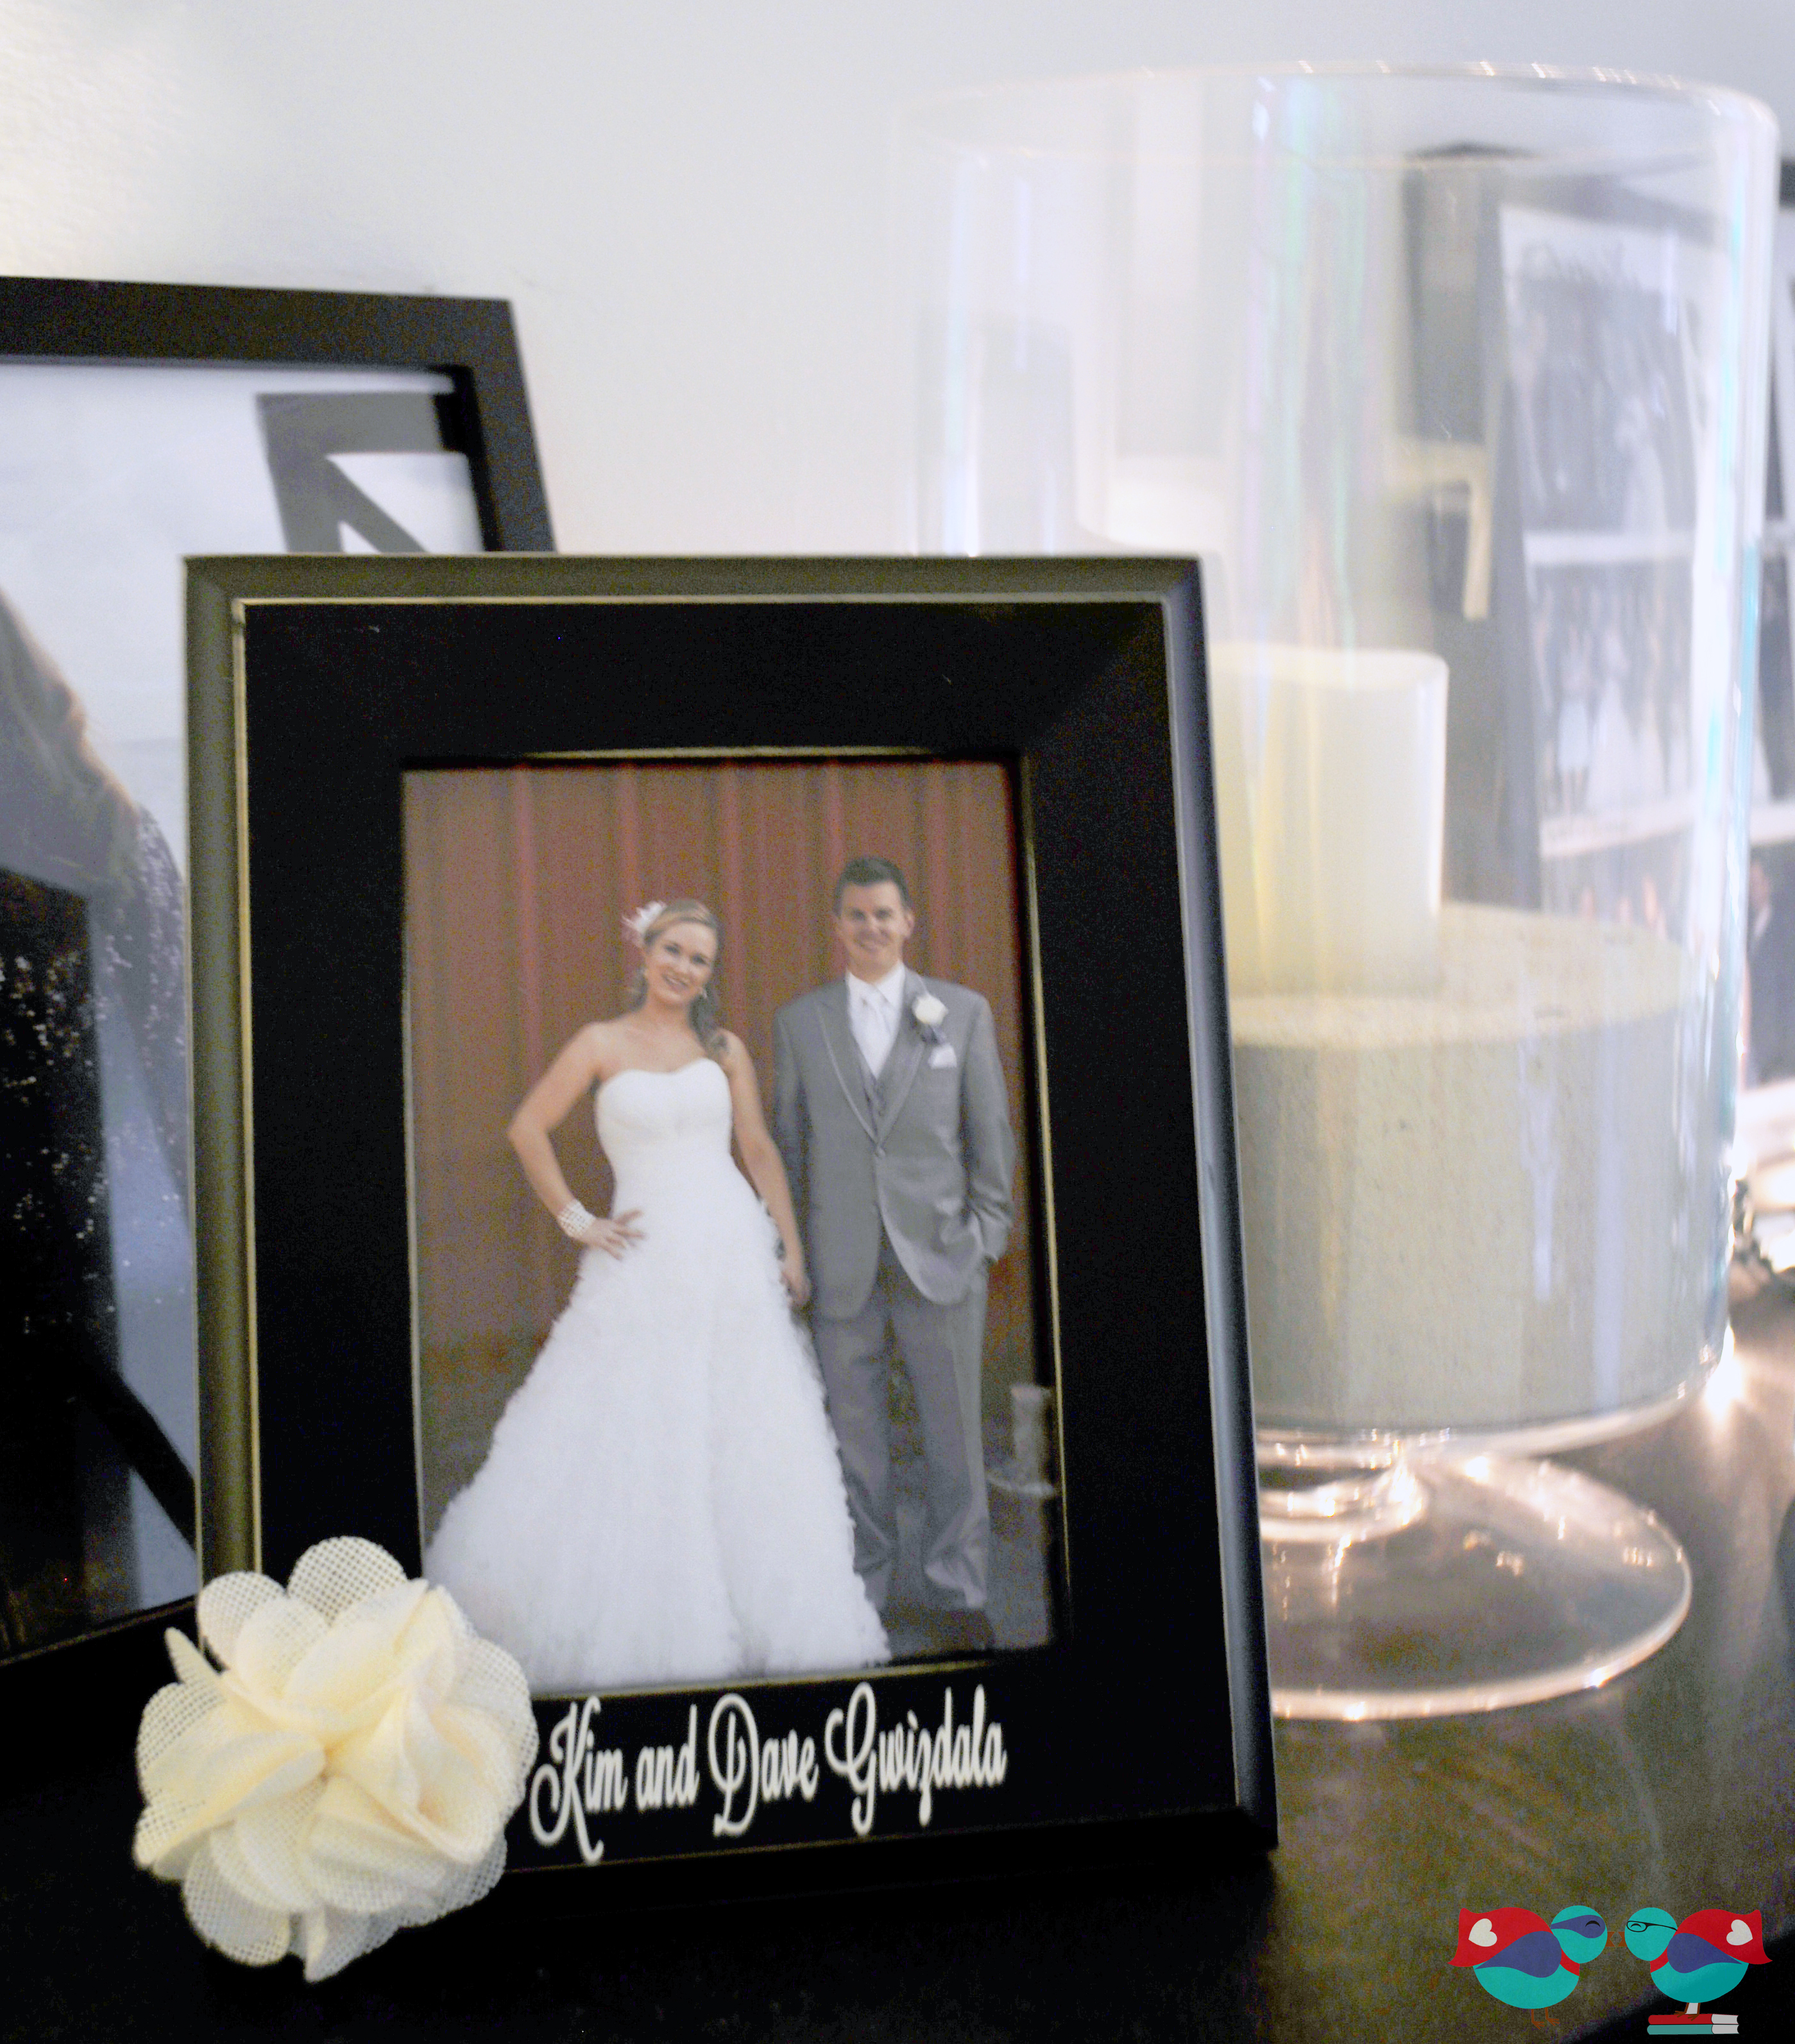 Wedding Gifts For Nerds : Personalized Couple Frame for a Wedding Gift @ The Love Nerds